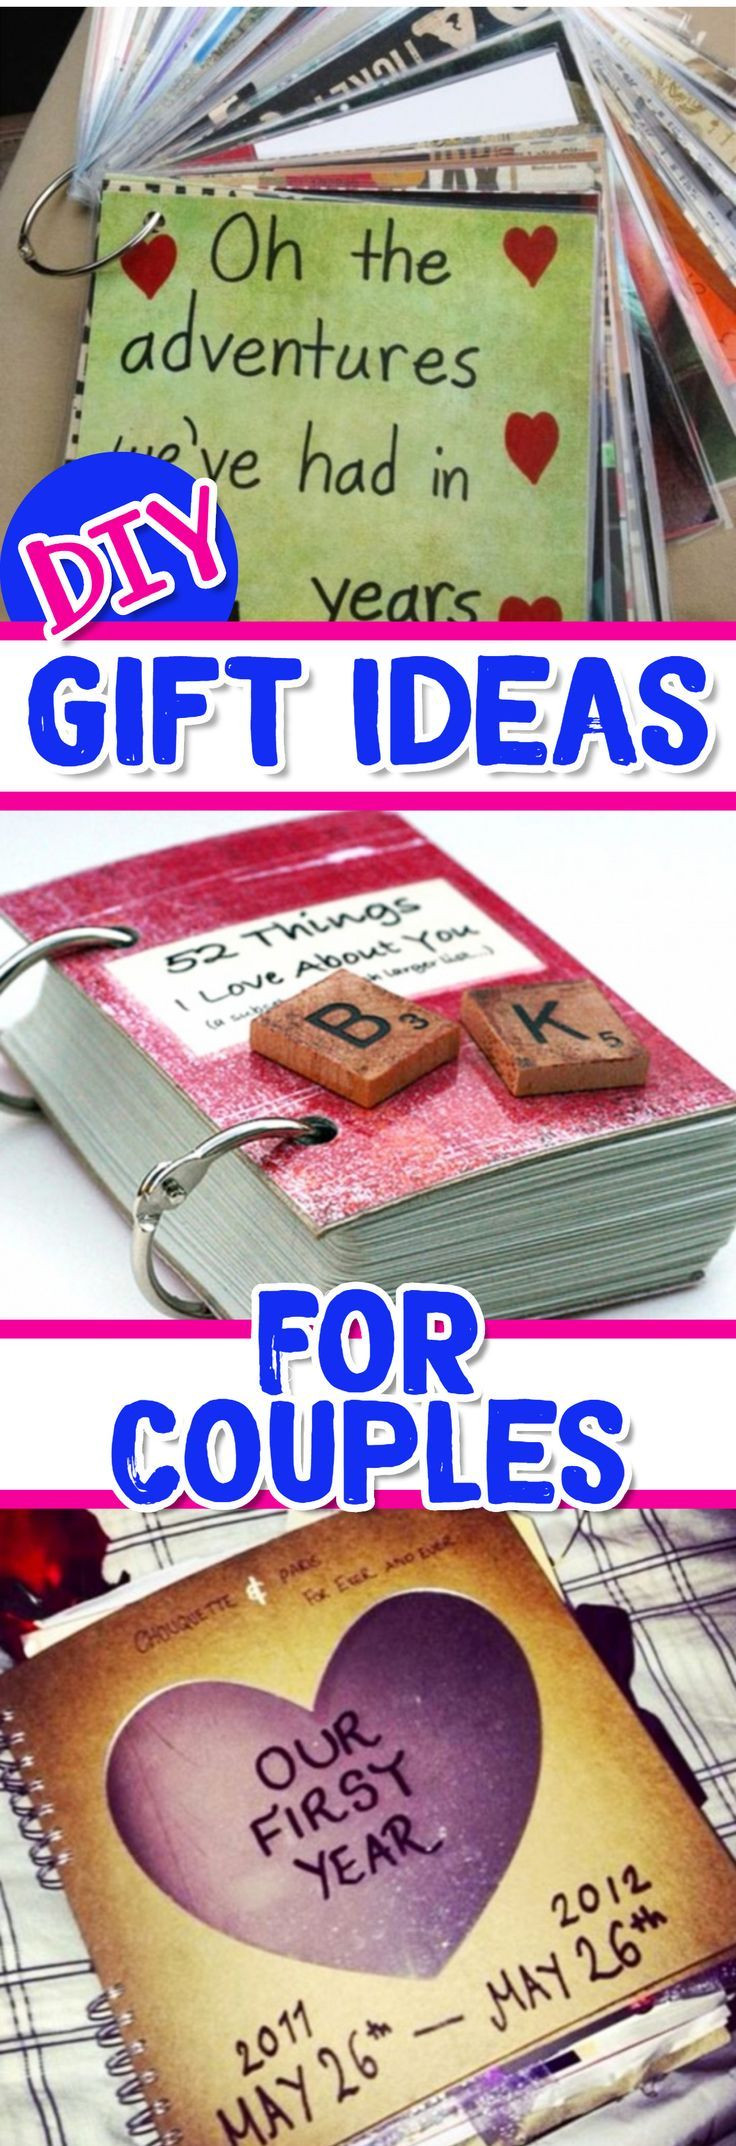 Last Minute Birthday Gift Ideas For Him  26 Handmade Gift Ideas For Him DIY Gifts He Will Love